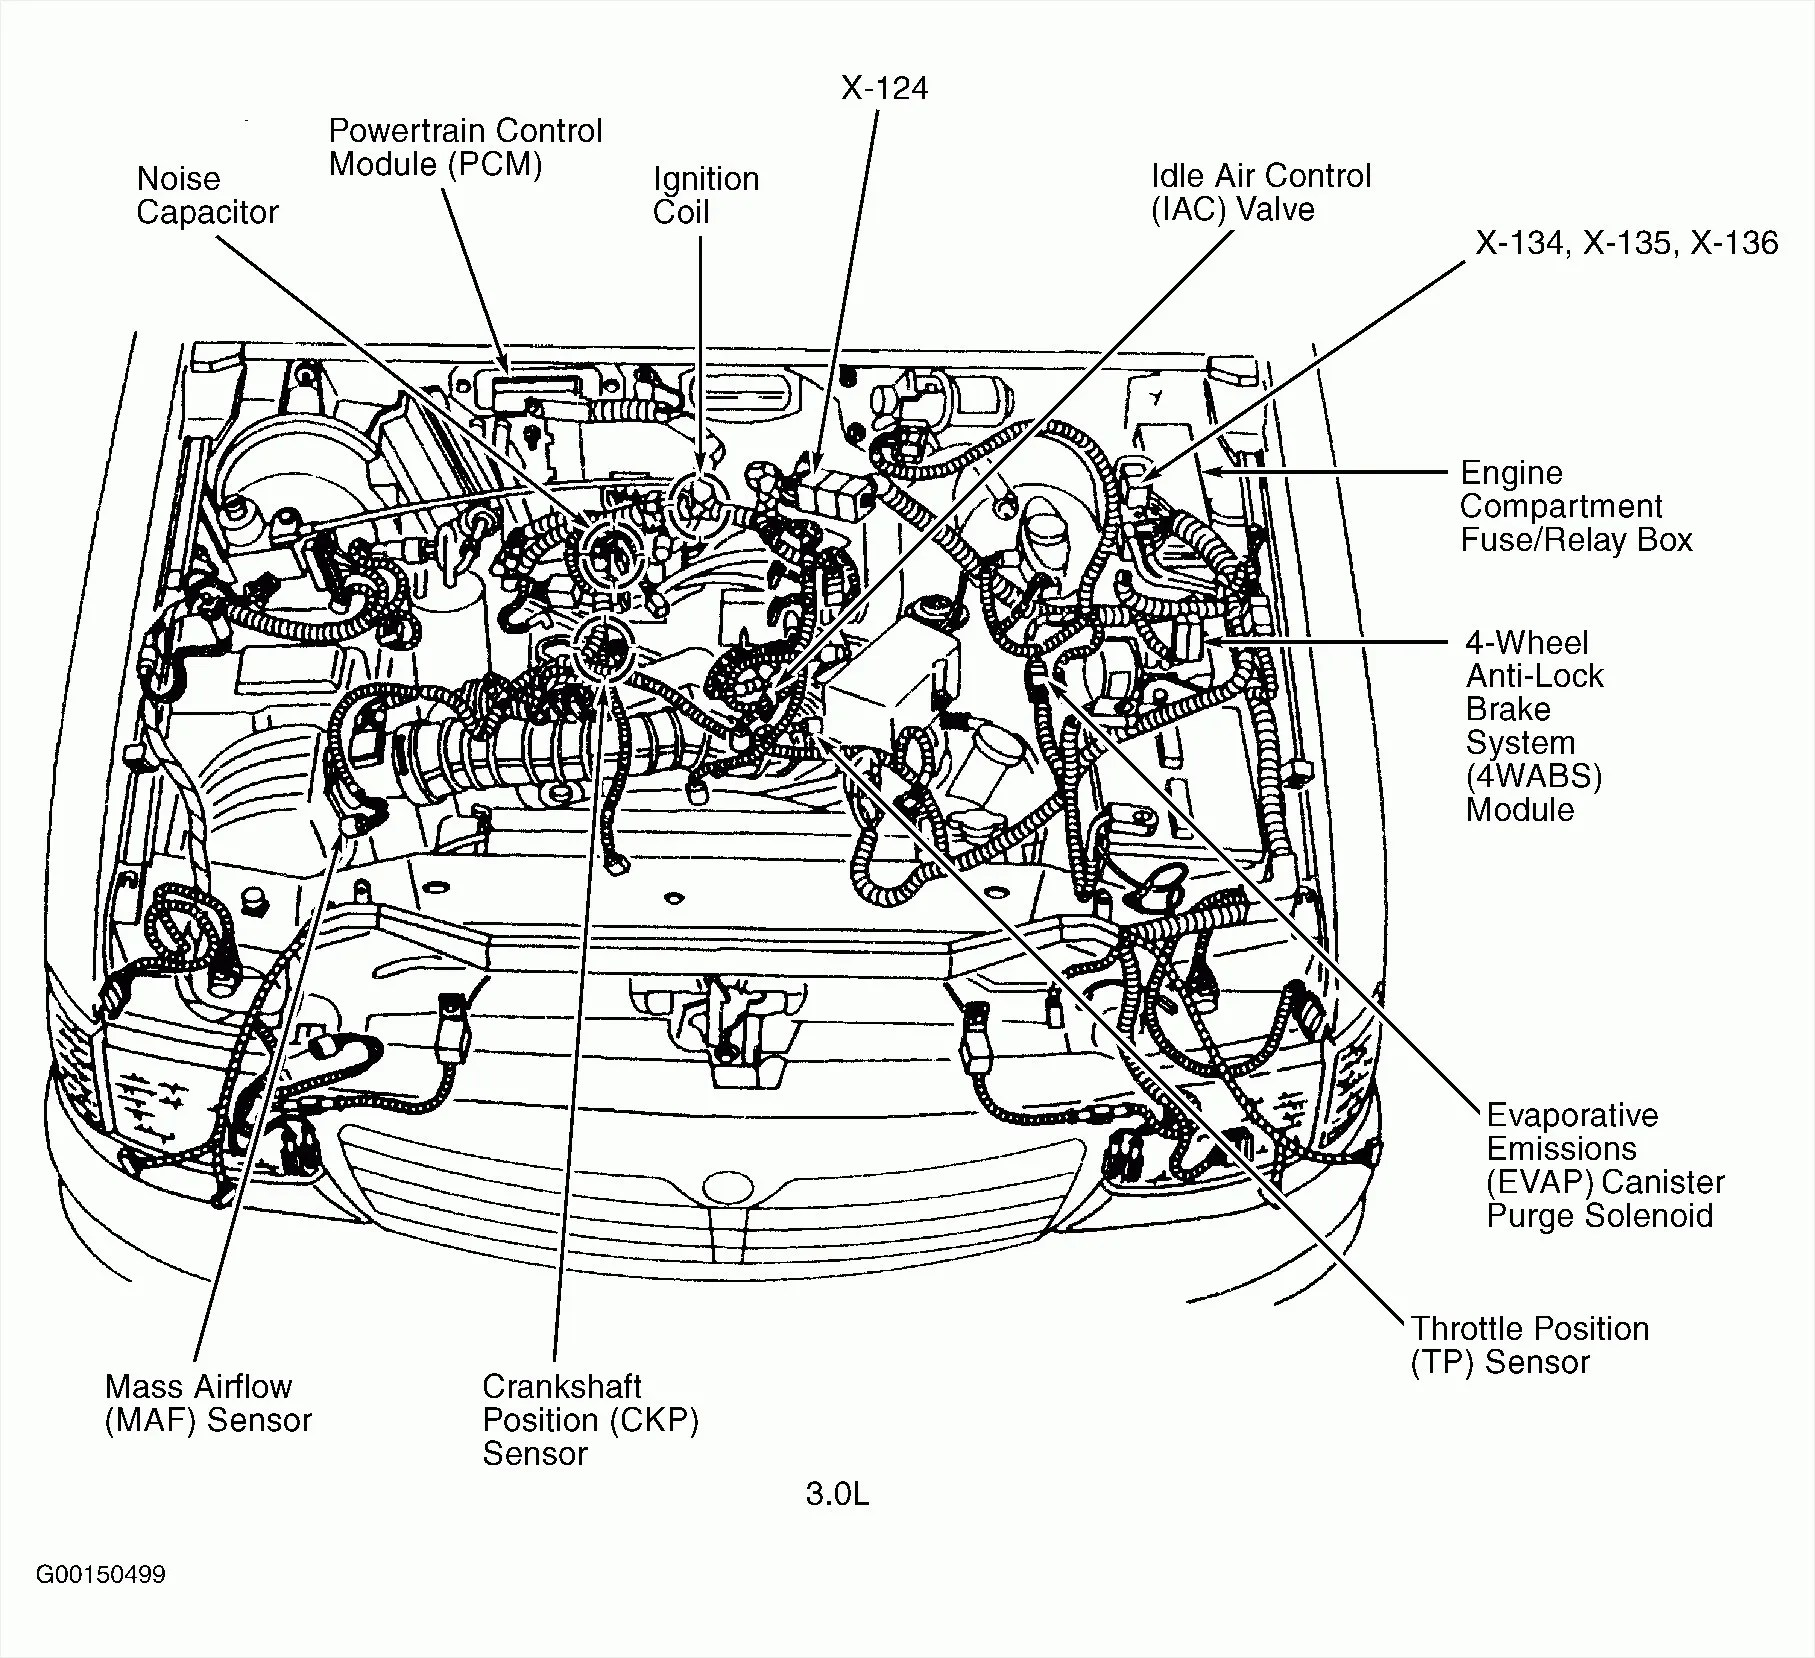 hight resolution of 2012 ford fusion engine diagram wiring diagram expert 2011 ford fusion engine diagram